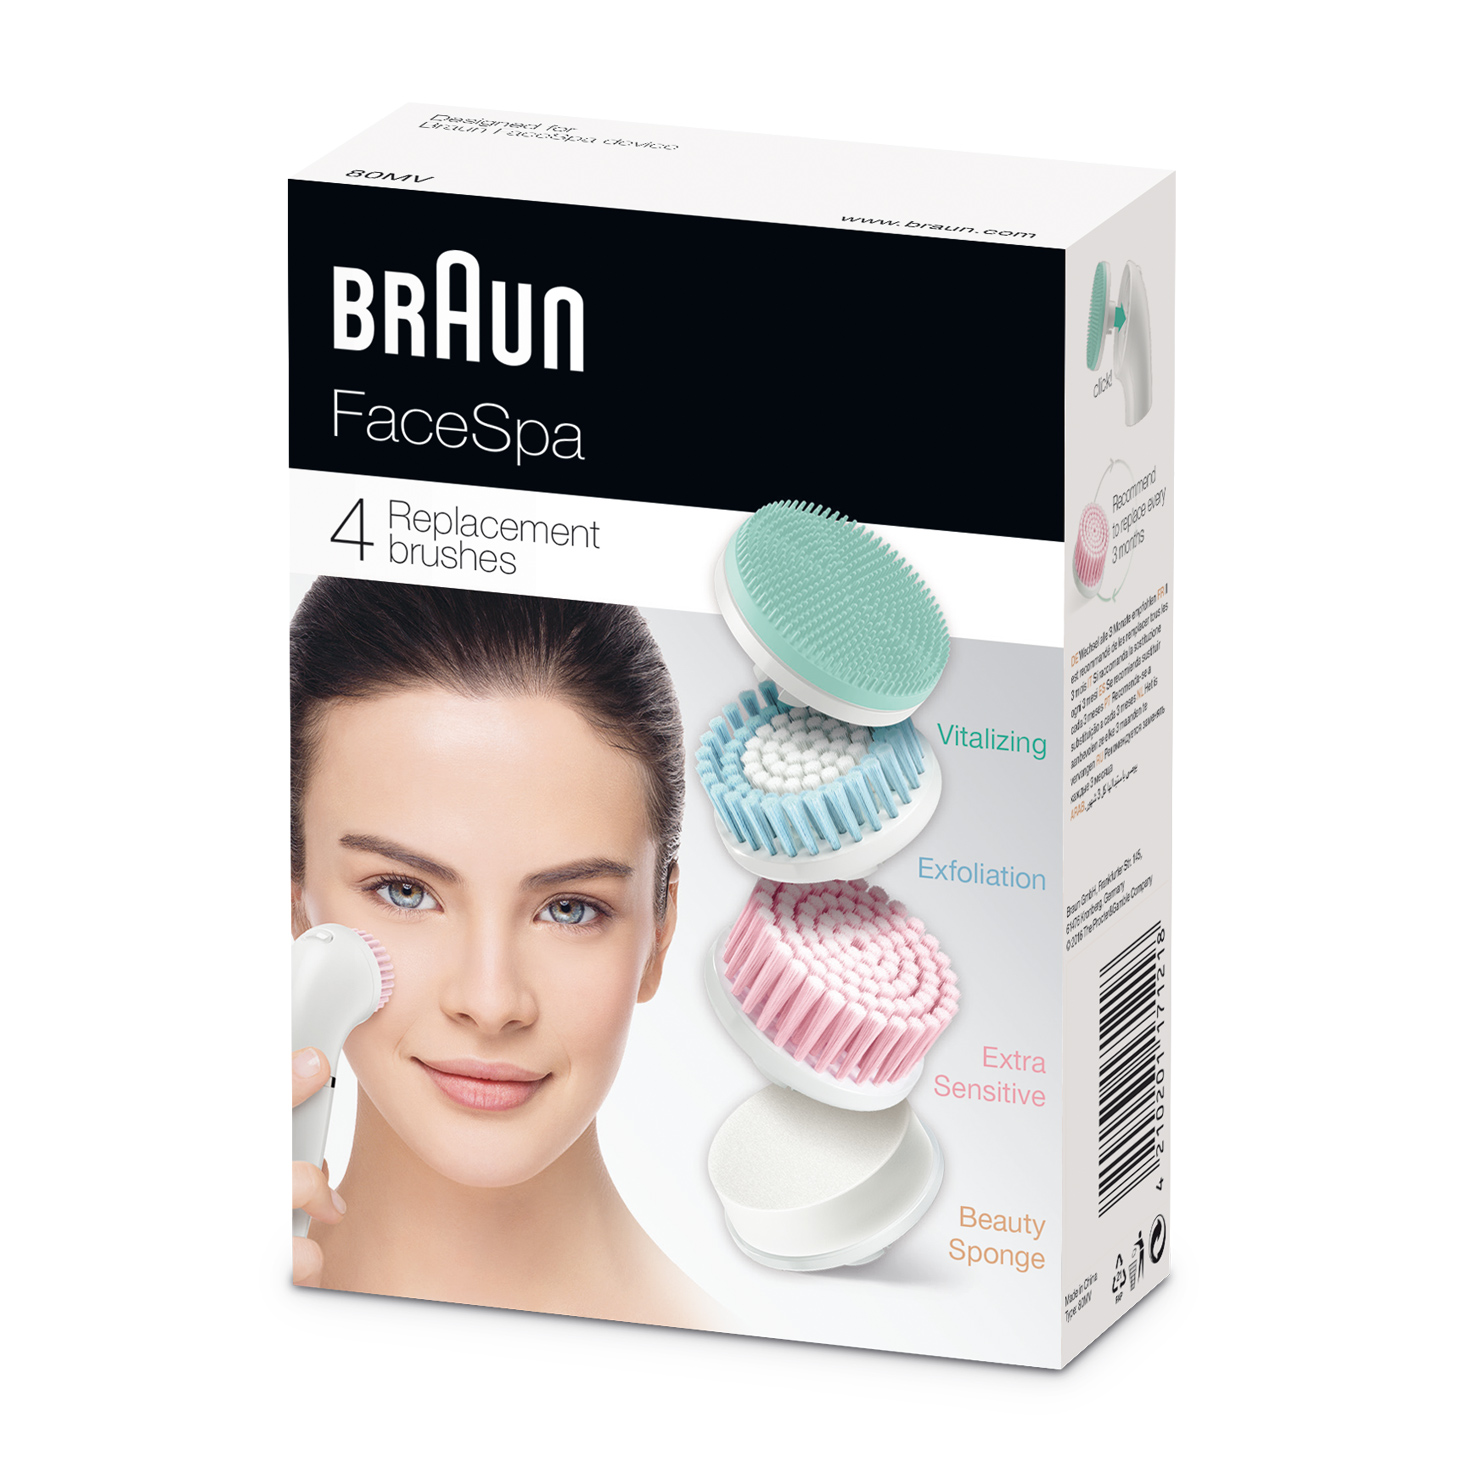 Braun FaceSpa 80MV refills - packaging